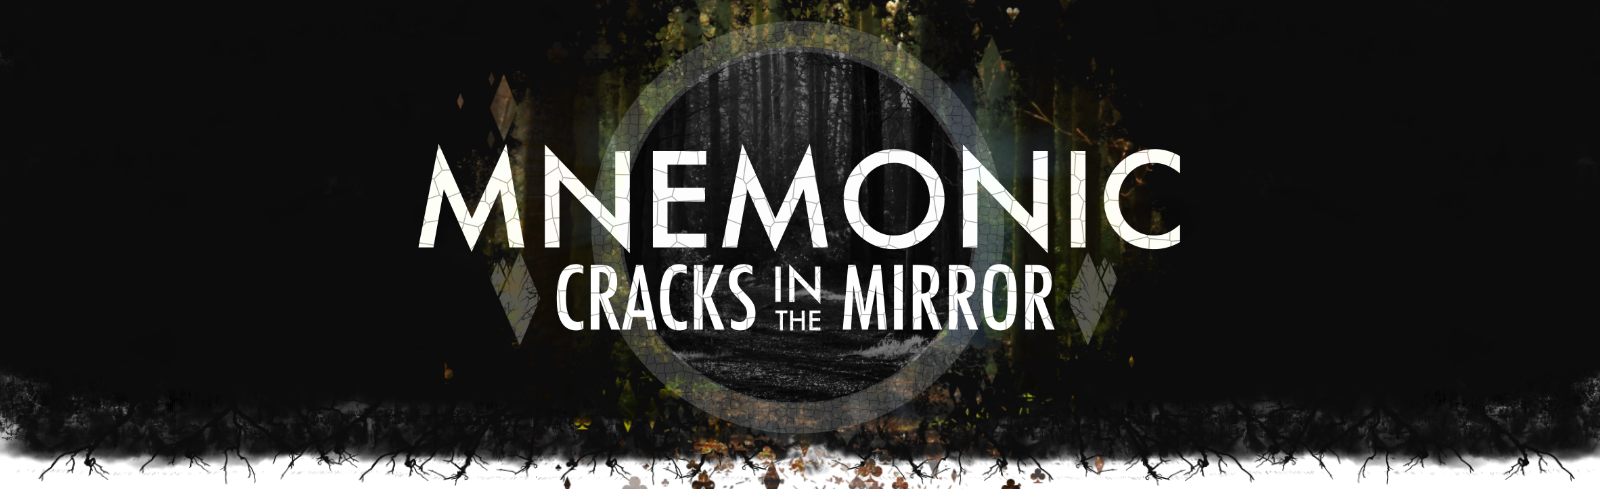 Cracks in the Mirror